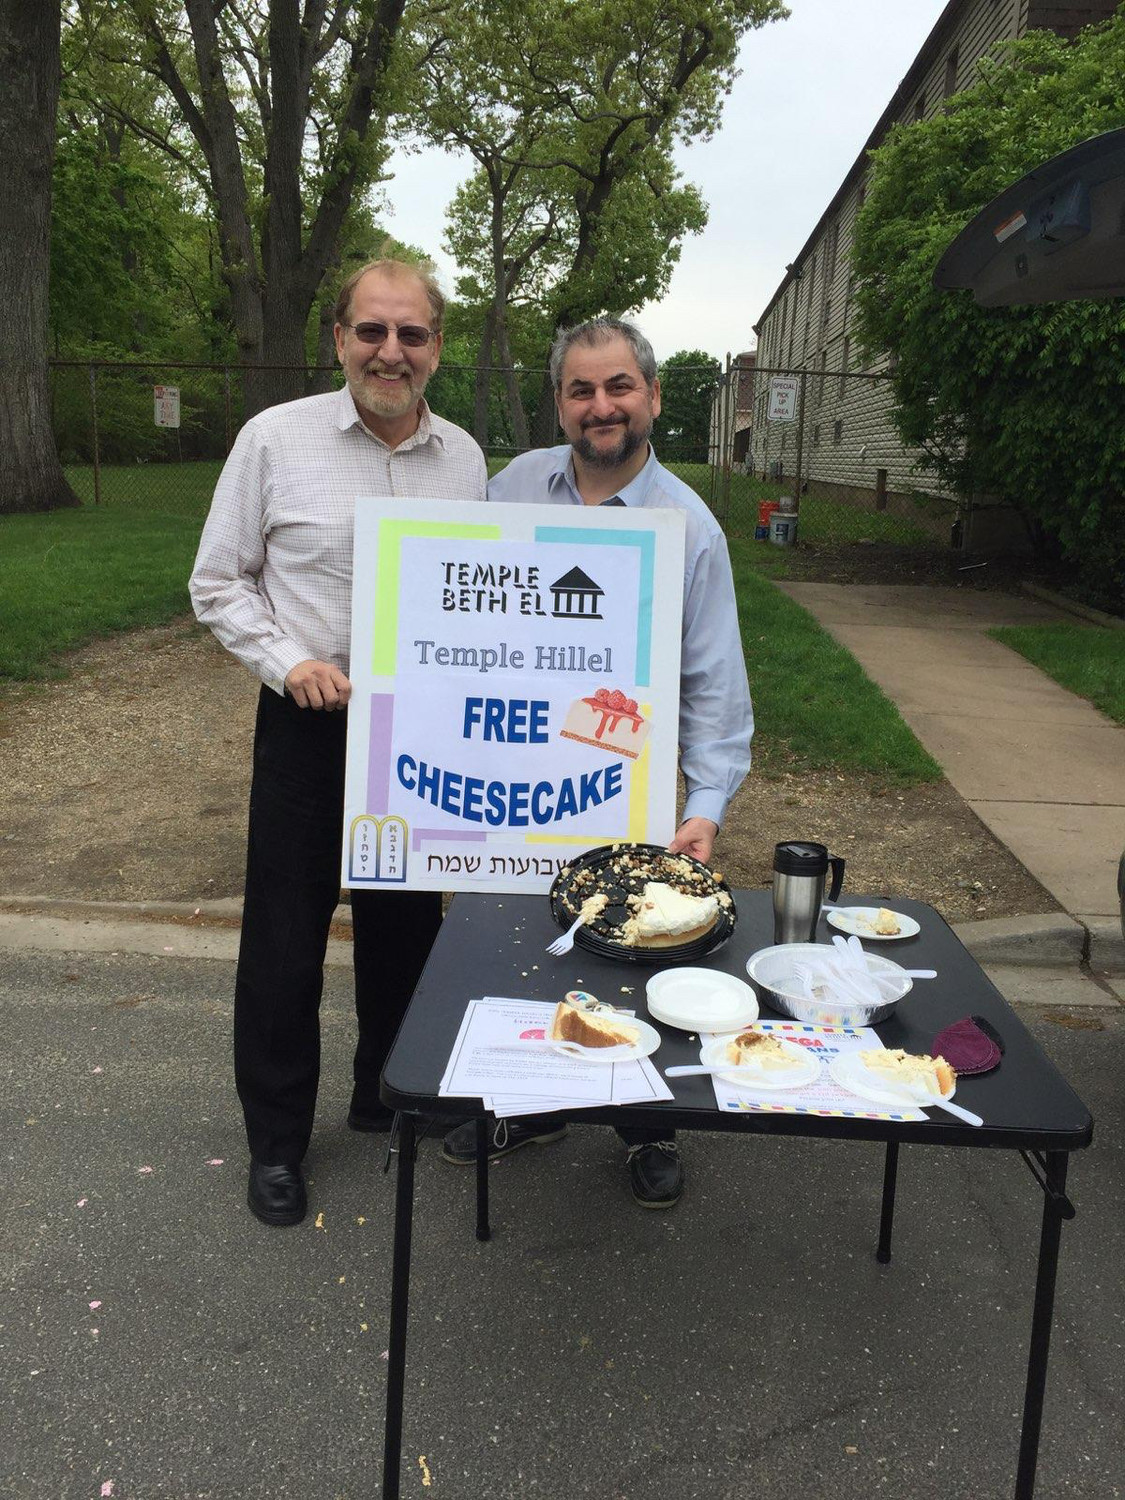 Temple Hillel spiritual leader Rabbi Steven Graber, left, and Rabbi Claudio Kupchik of Temple Beth-El, served cheese cake and spoke to Hewlett High students about the Jewish holiday of Shavuot.